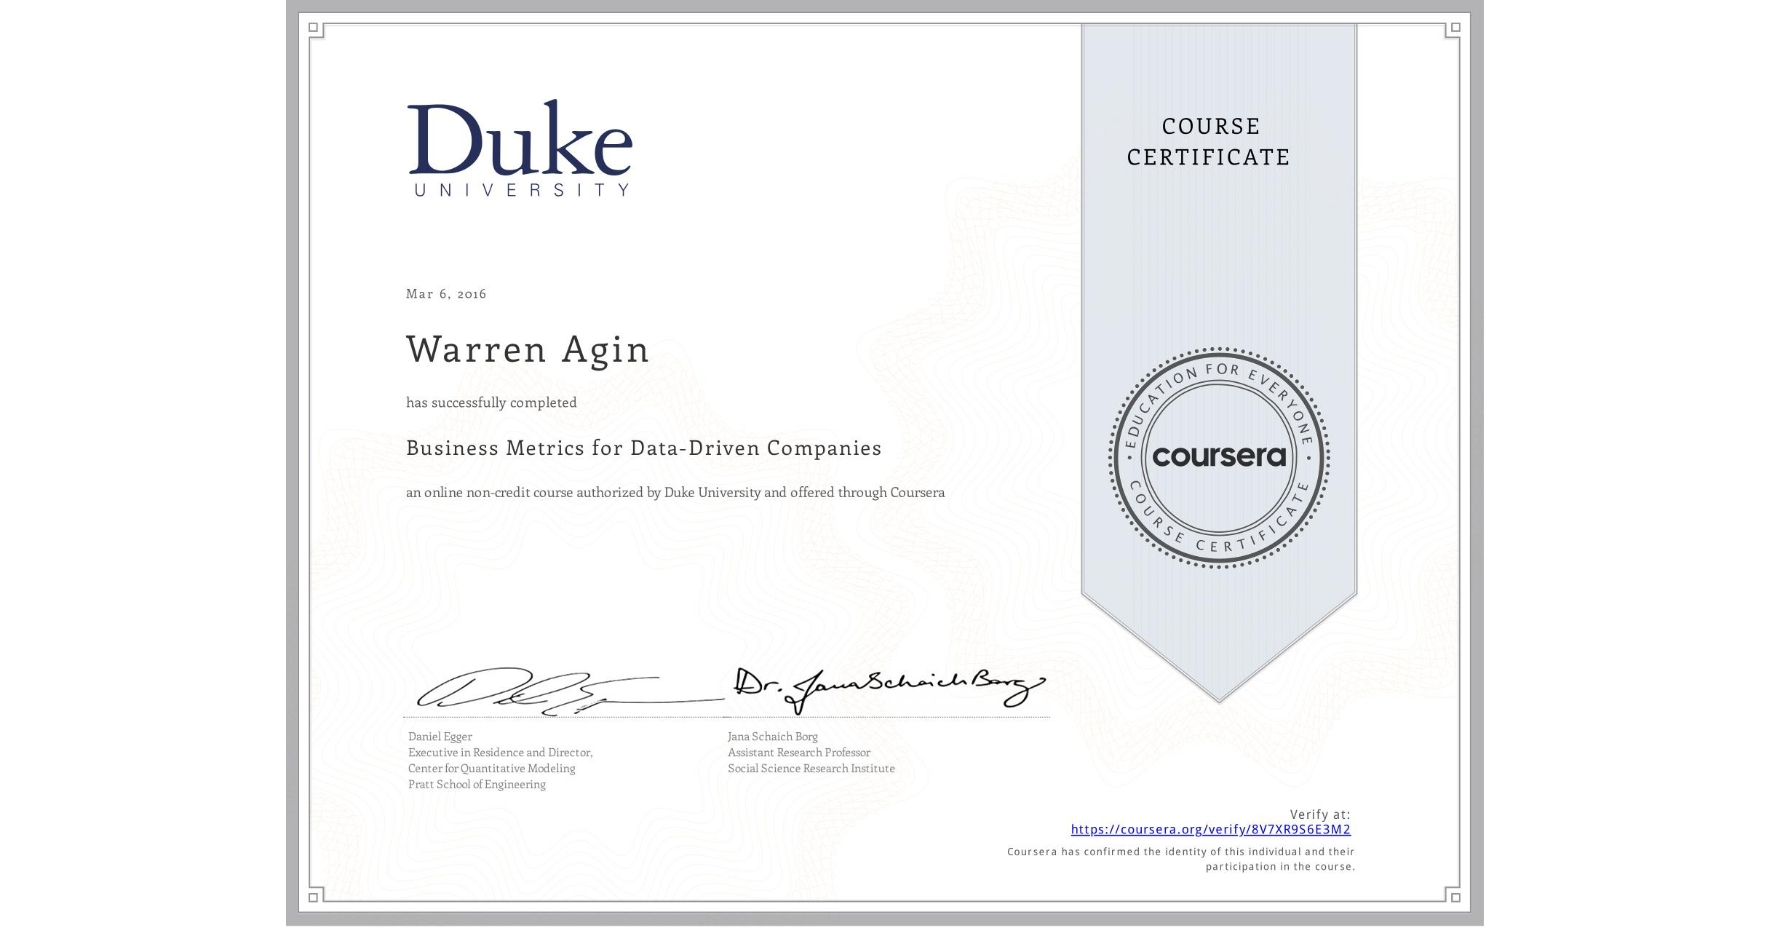 View certificate for Warren Agin, Business Metrics for Data-Driven Companies, an online non-credit course authorized by Duke University and offered through Coursera